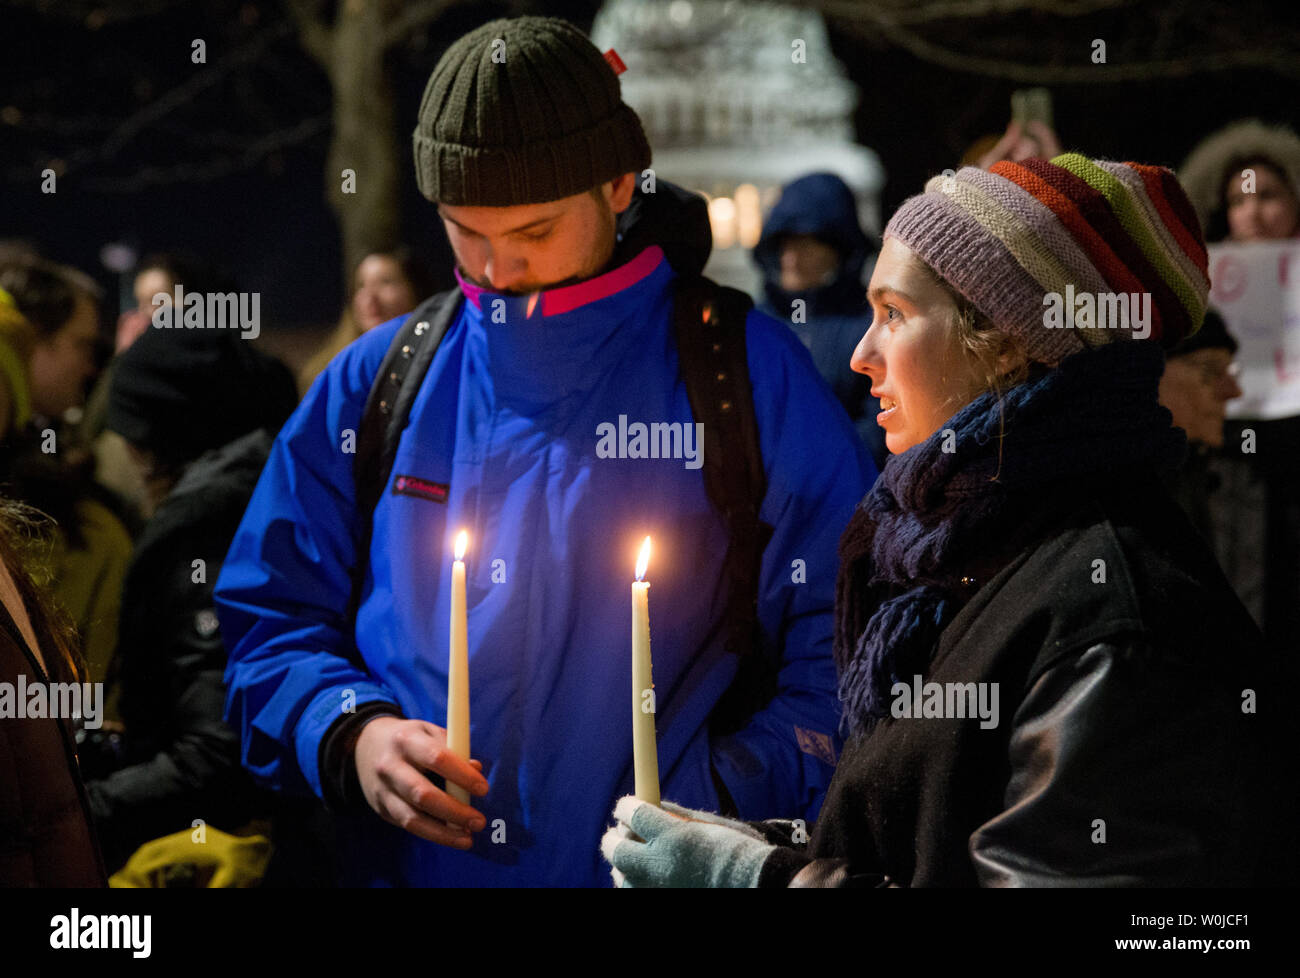 Demonstrators hold candles during a candlelight vigil in front of the U.S. Supreme Court to call on U.S. President Trump to reverse his administration's recent anti-refugee and anti-immigrant executive orders that bar for 90 days people traveling from Iraq, Iran, Sudan Syria, Yemen, Libya and Somalia to the United States in Washington, DC on January 30, 2017. President Trump's executive orders additionally suspend processed refugee admissions for Syrians for 120 days and any new refugee applications and admissions for Syrian refugees to be banned indefinitely.        Photo by Erin Schaff/UPI - Stock Image